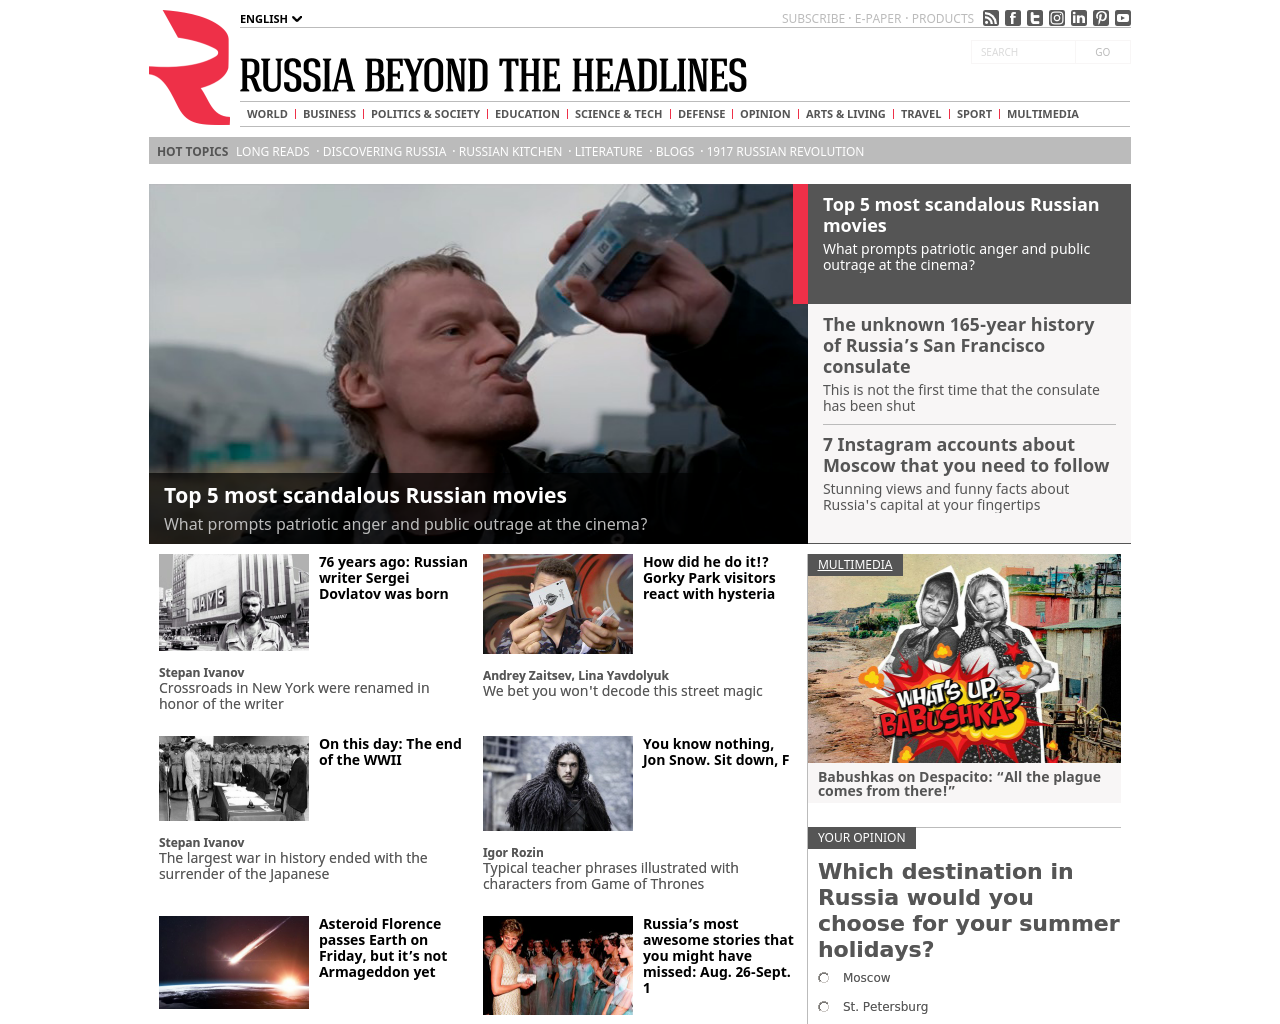 Russia-Beyond-The-Headlines-Advertising-Reviews-Pricing